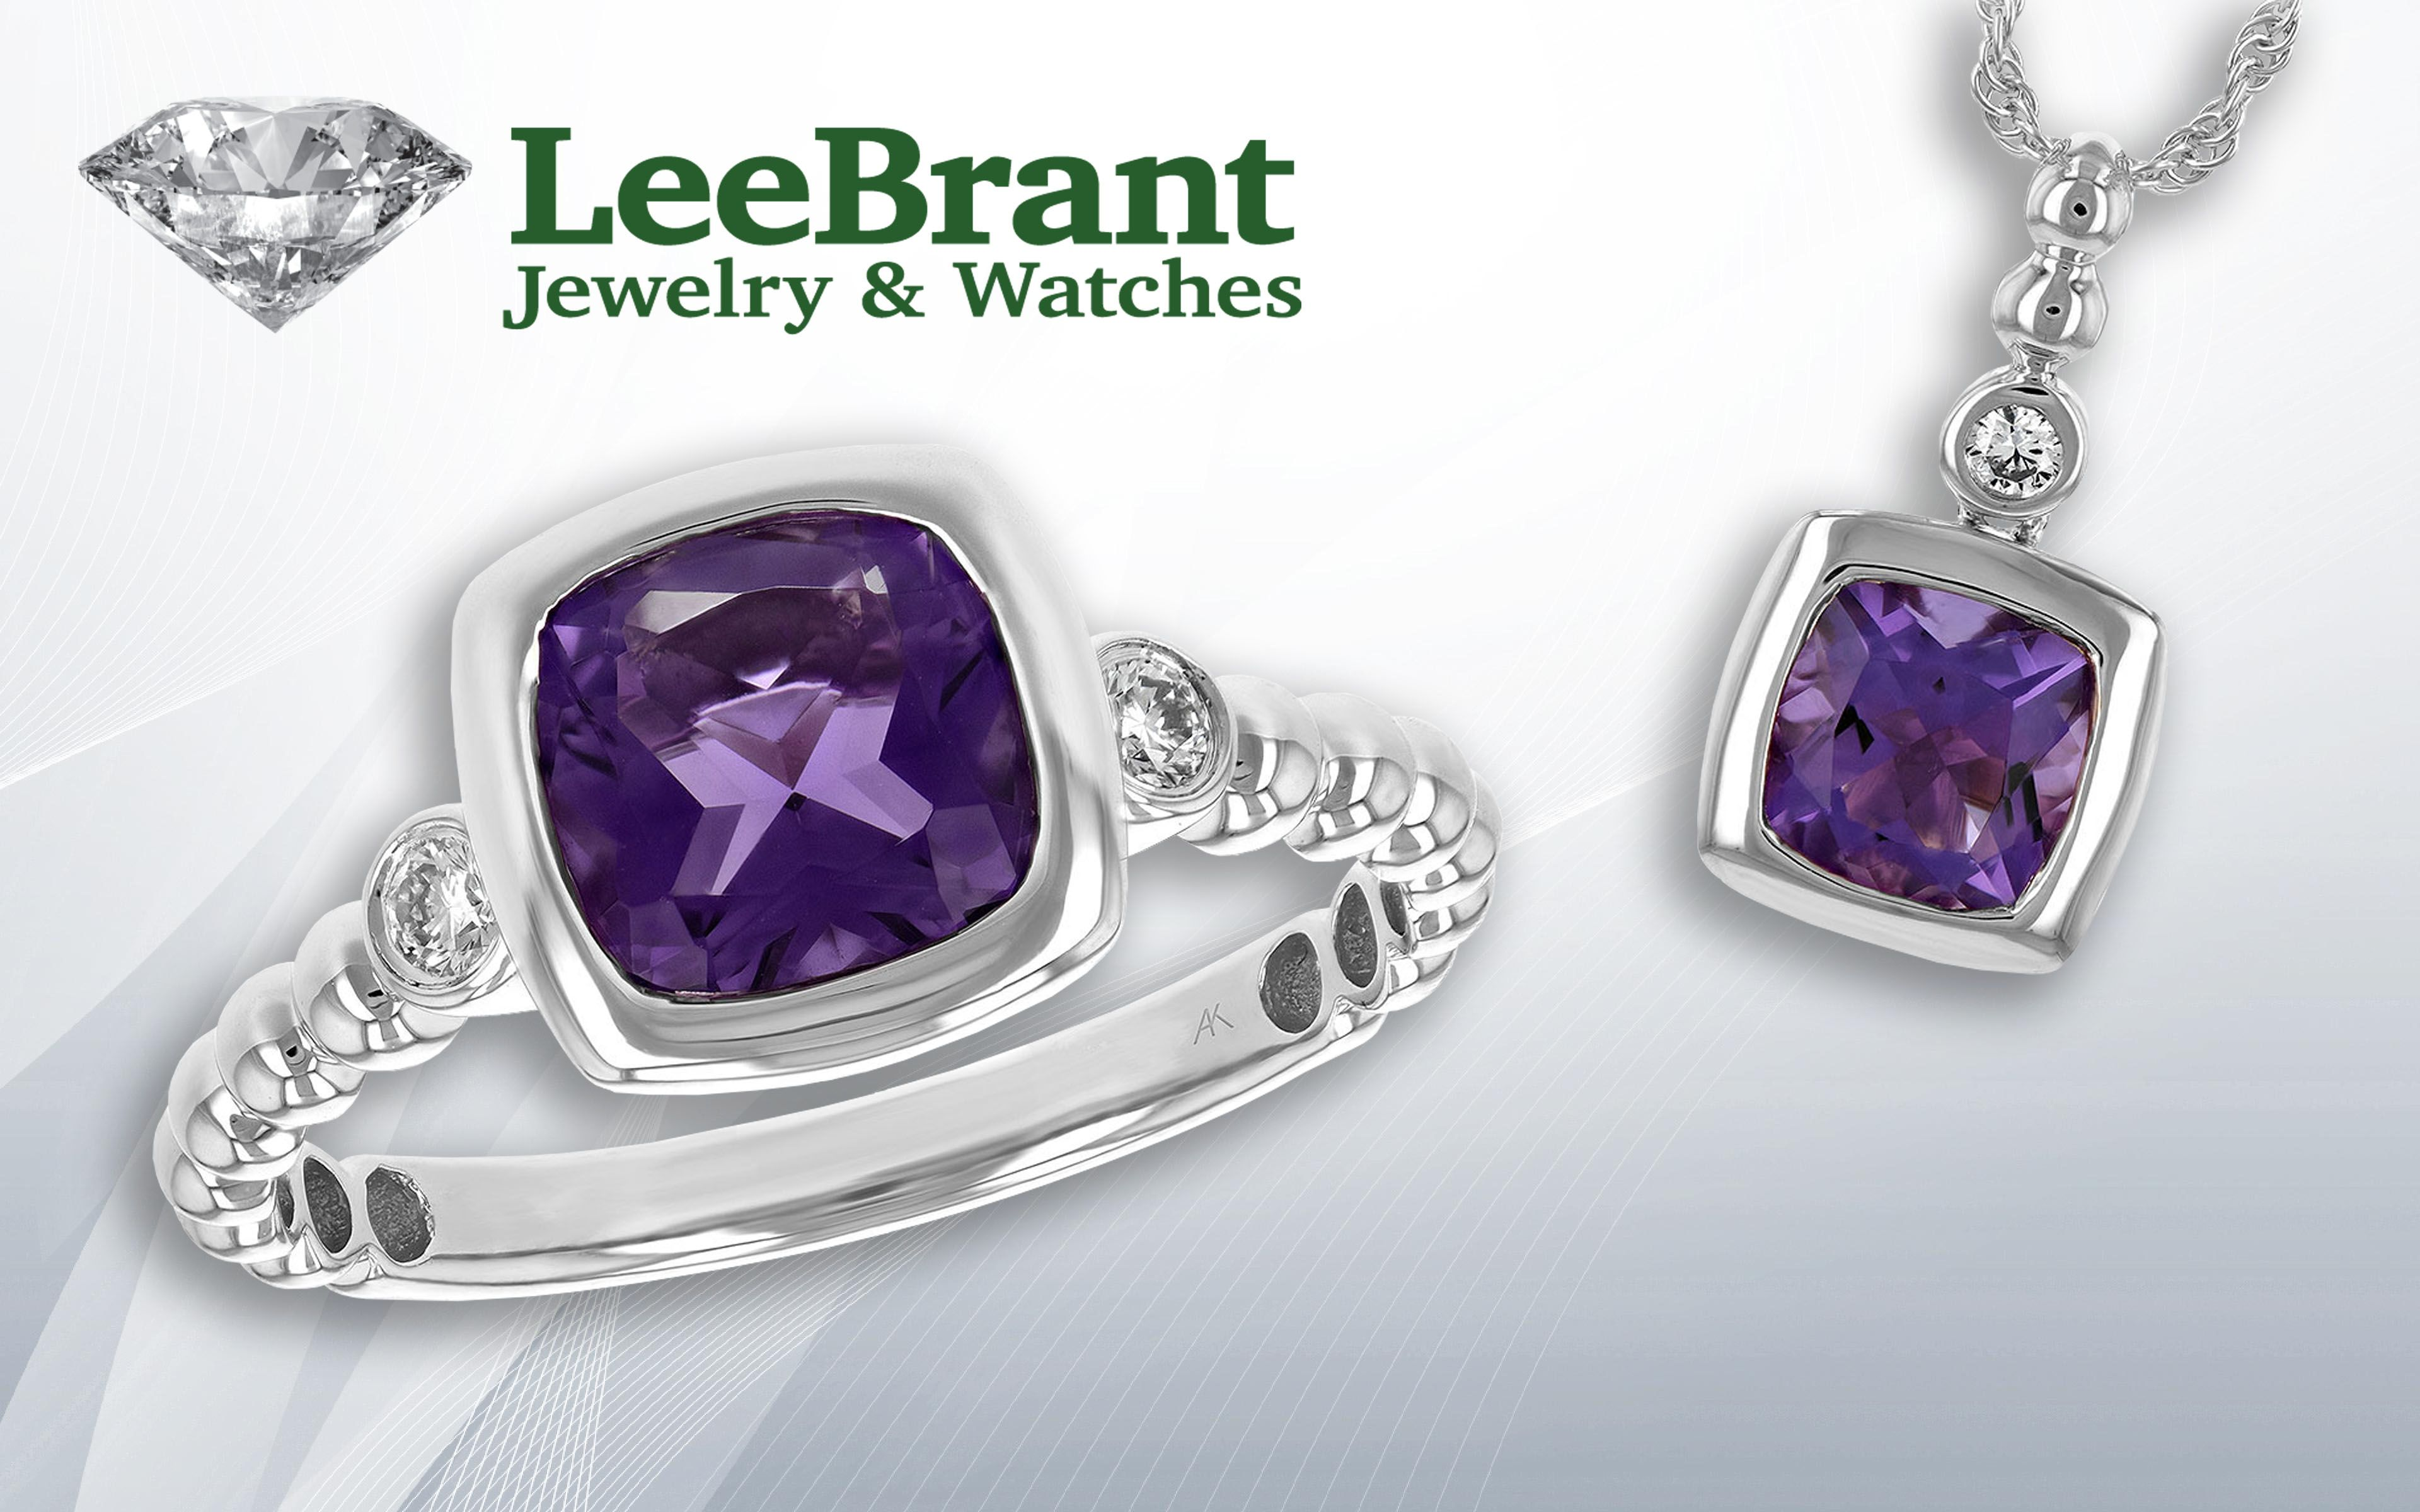 Gorgeous amethyst ring and pendant in kt white gold with bezel set